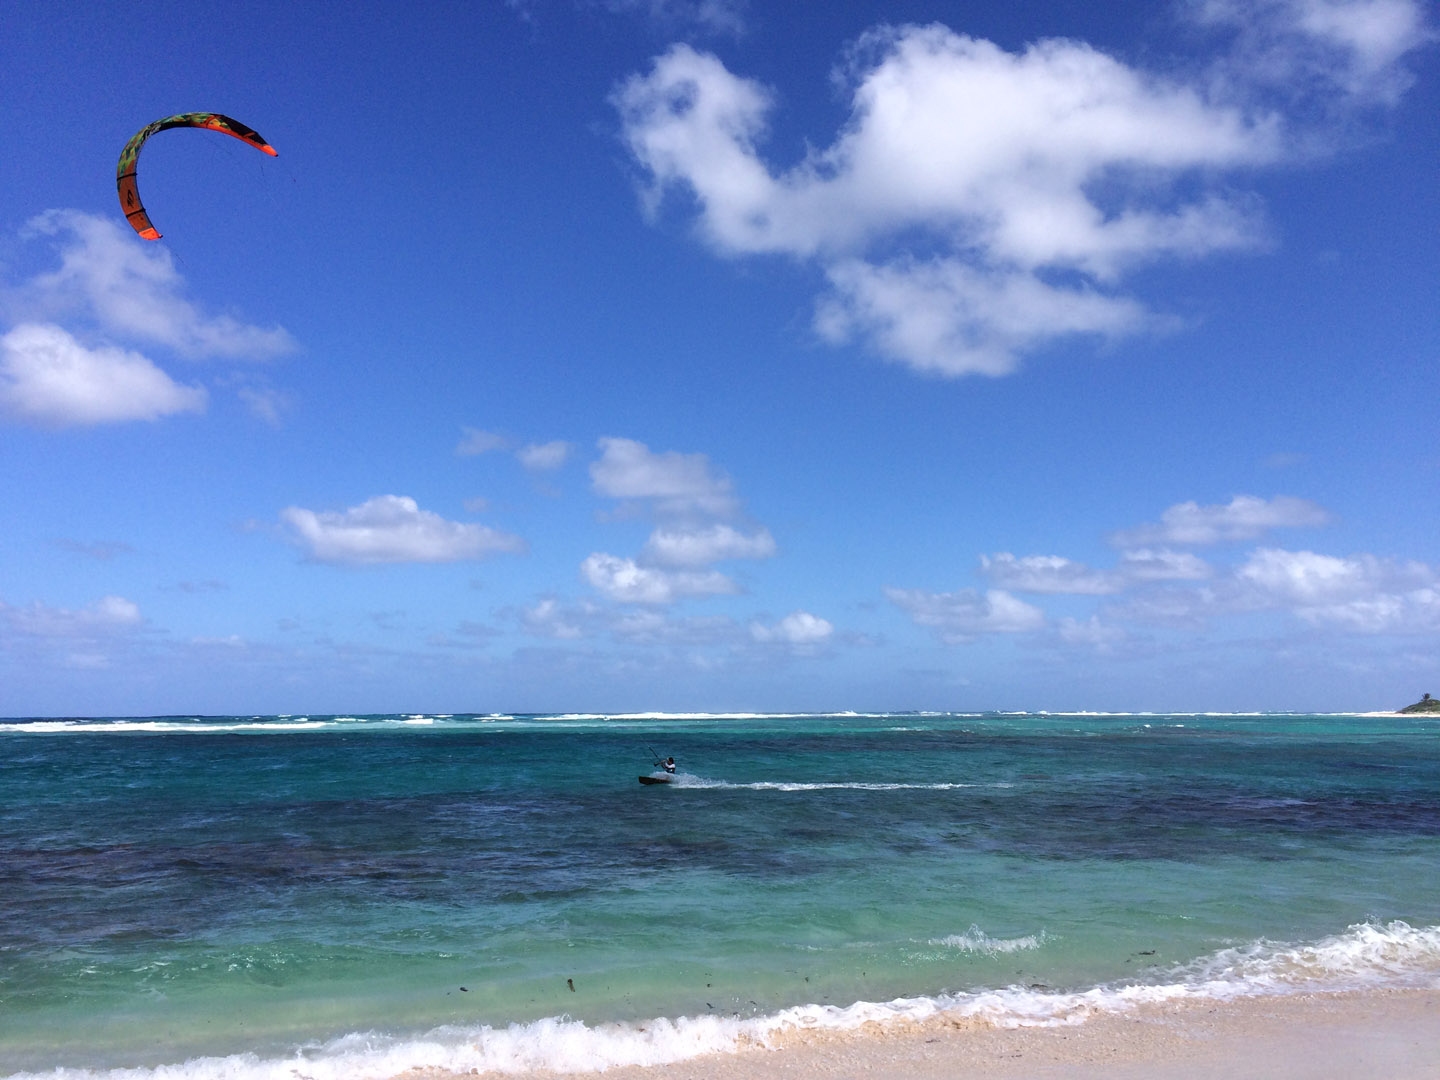 Kitesurfer on Loblolly Bay